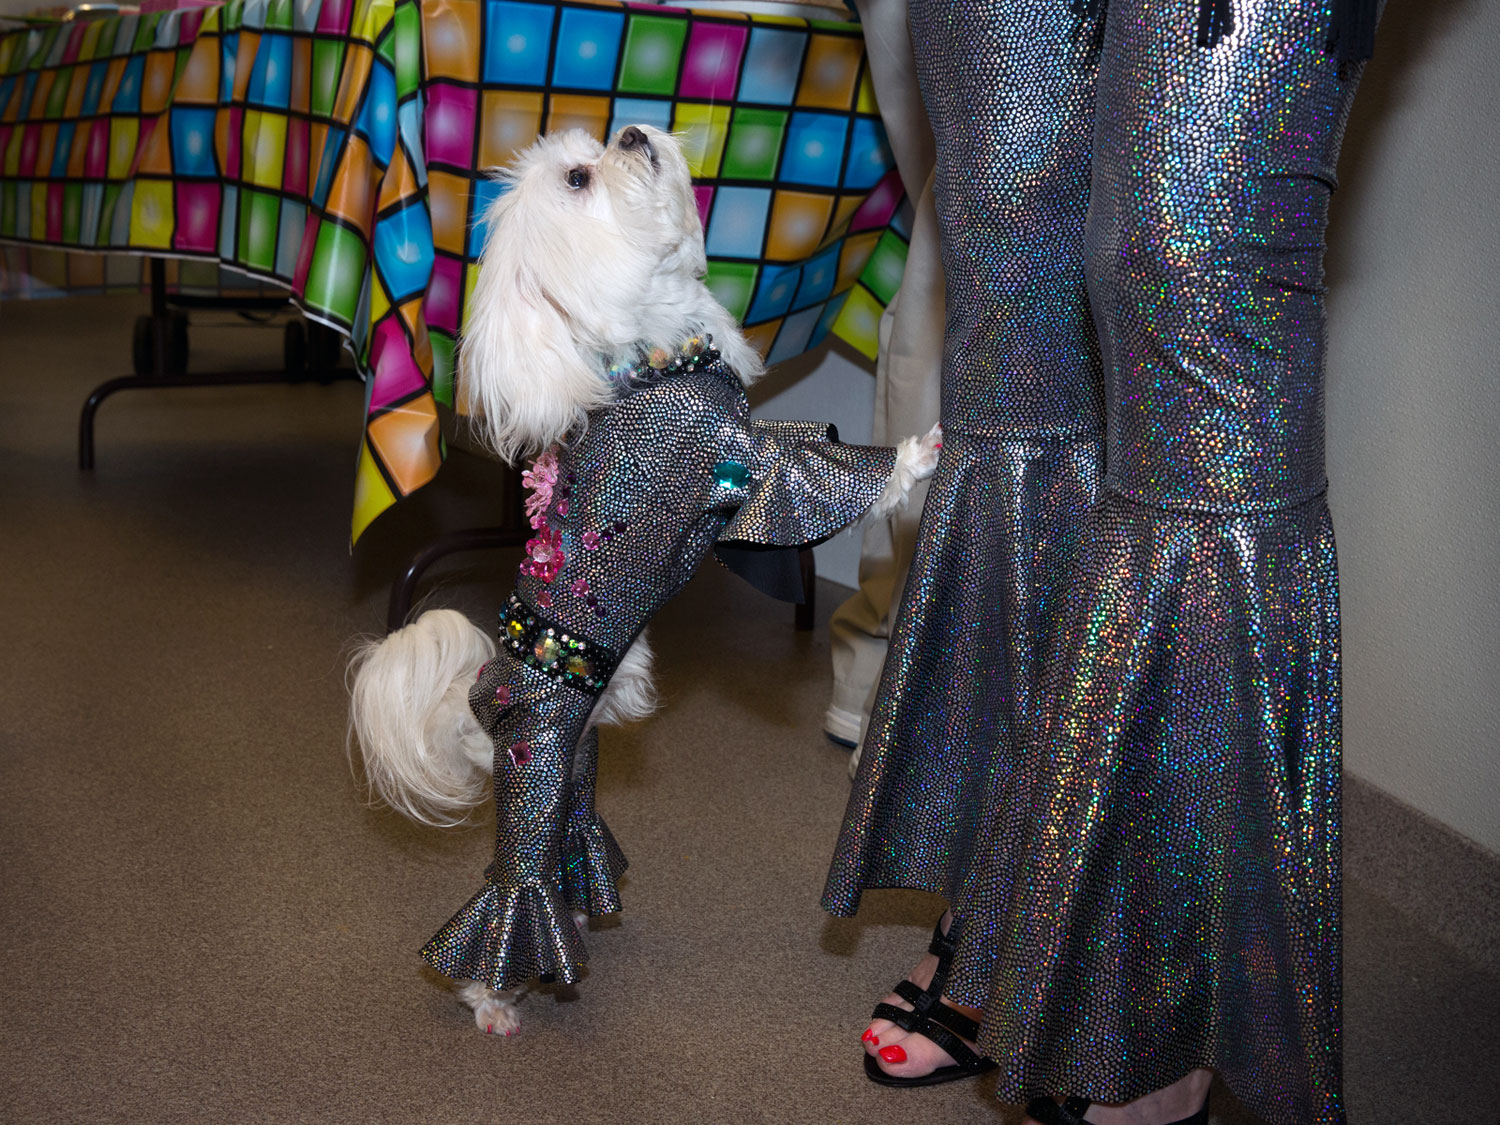 ZZ wearing a custom made jumpsuit designed by Olga Yuditsky to match Ilene's outfit for her disco themed birthday party.